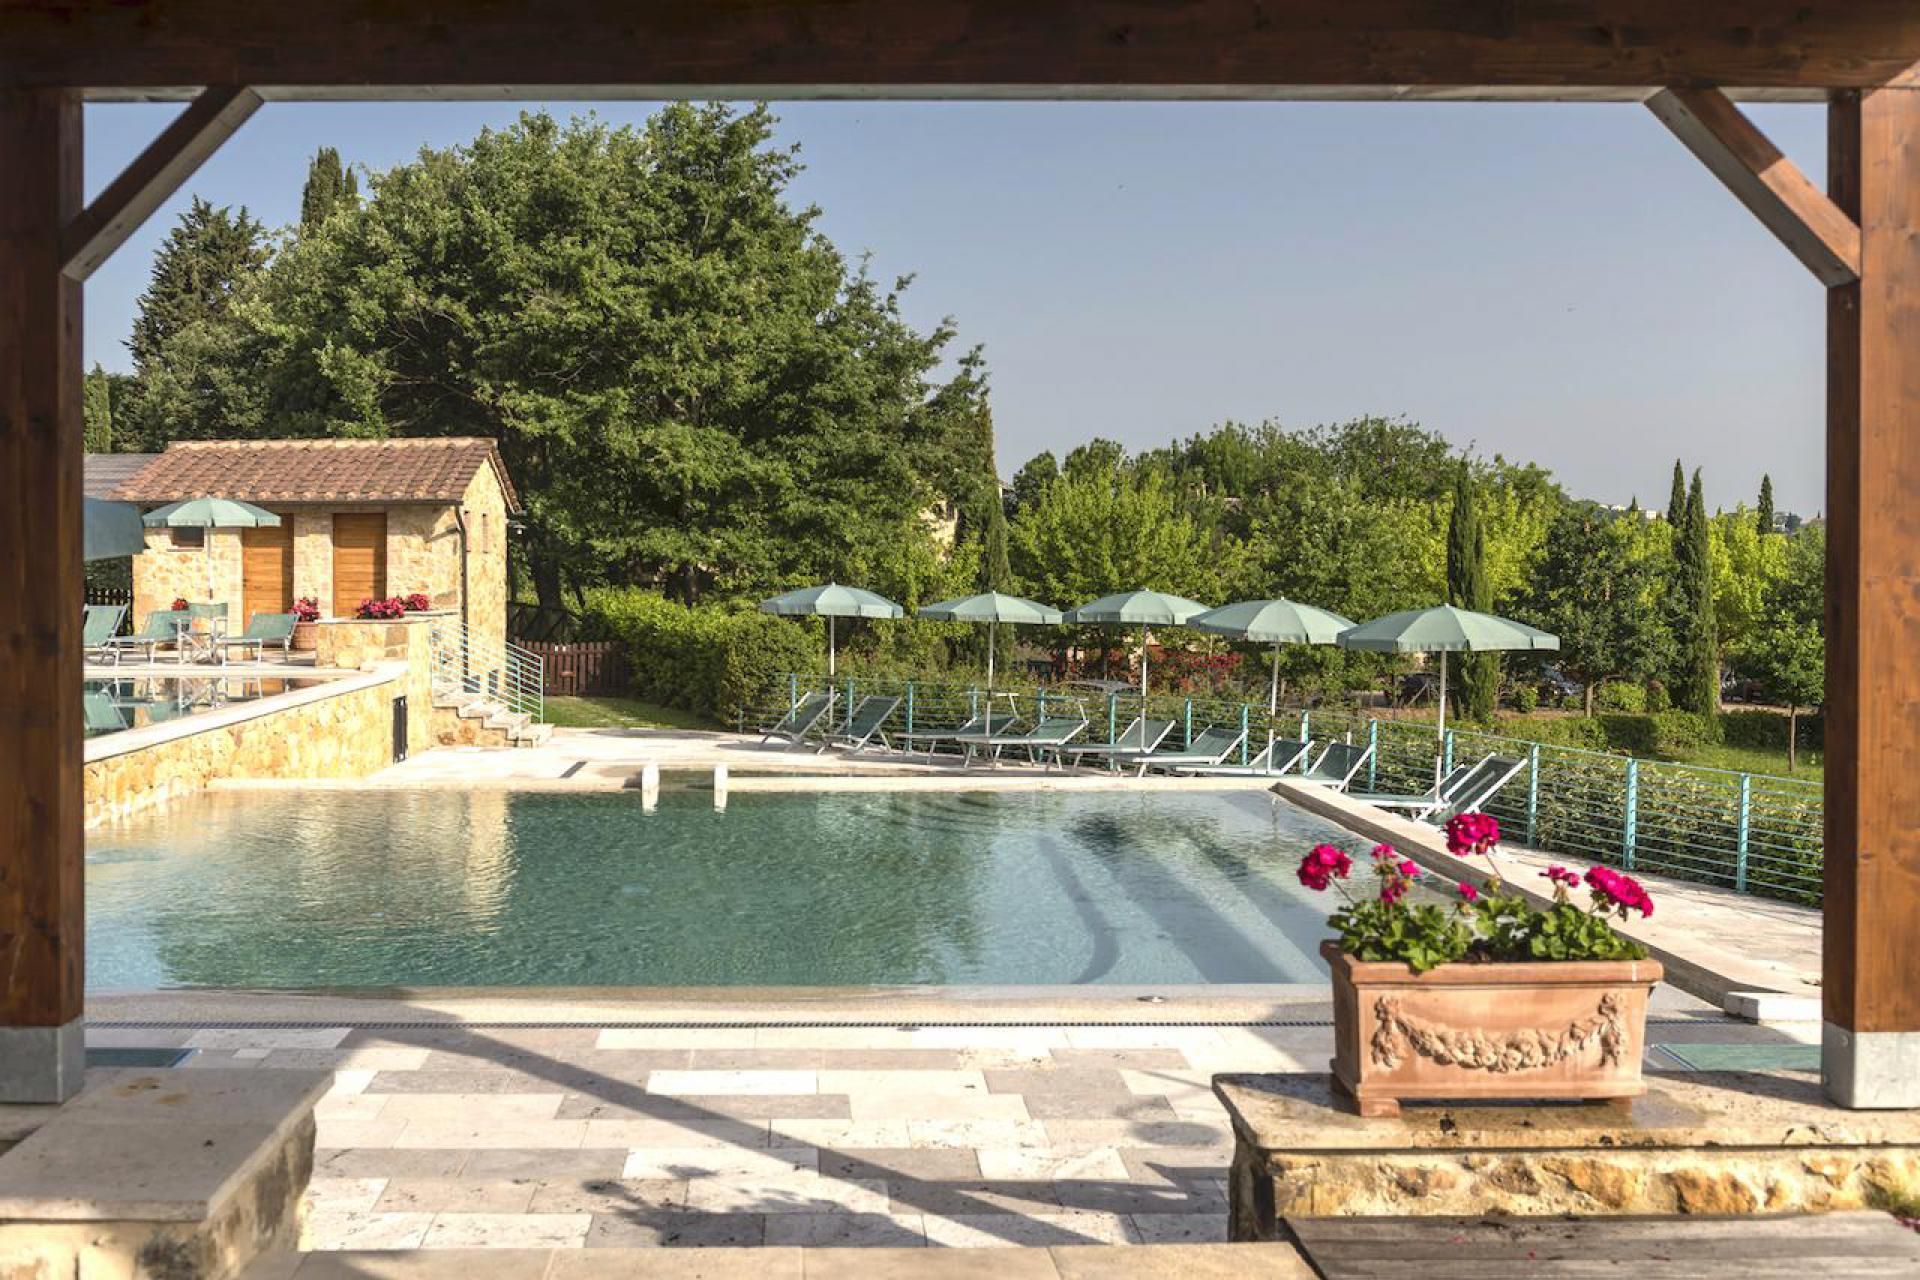 Agriturismo Toskana Kinderfreundliches Resort in der Toskana mit tollem Pool | myitalyselection.de